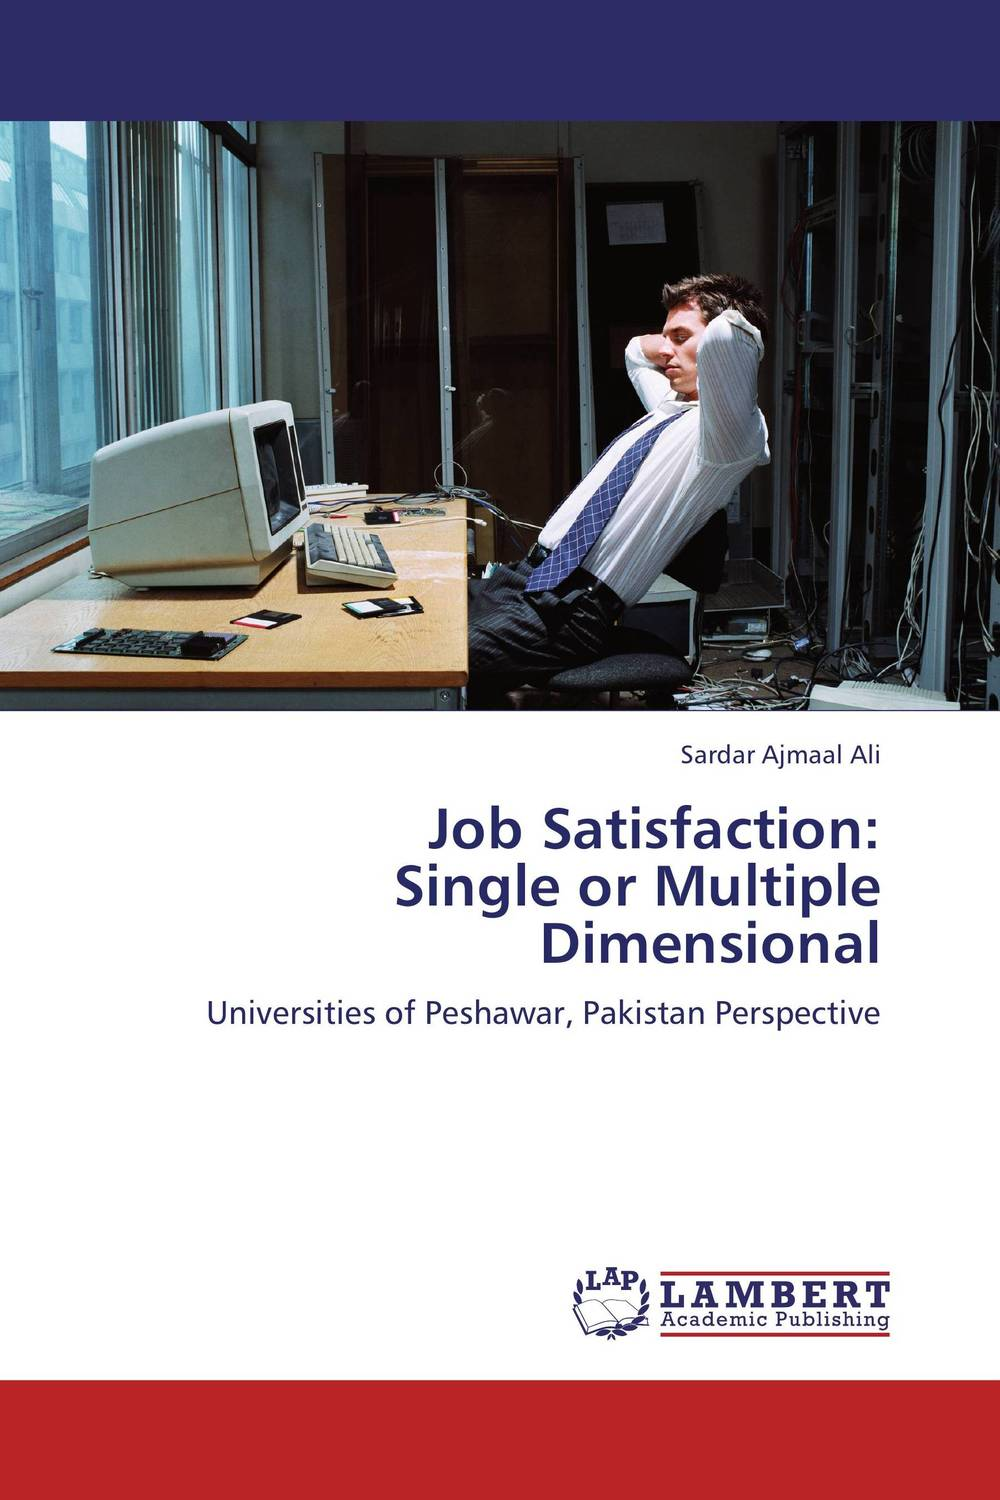 Job Satisfaction:  Single or Multiple Dimensional impact of job satisfaction on turnover intentions